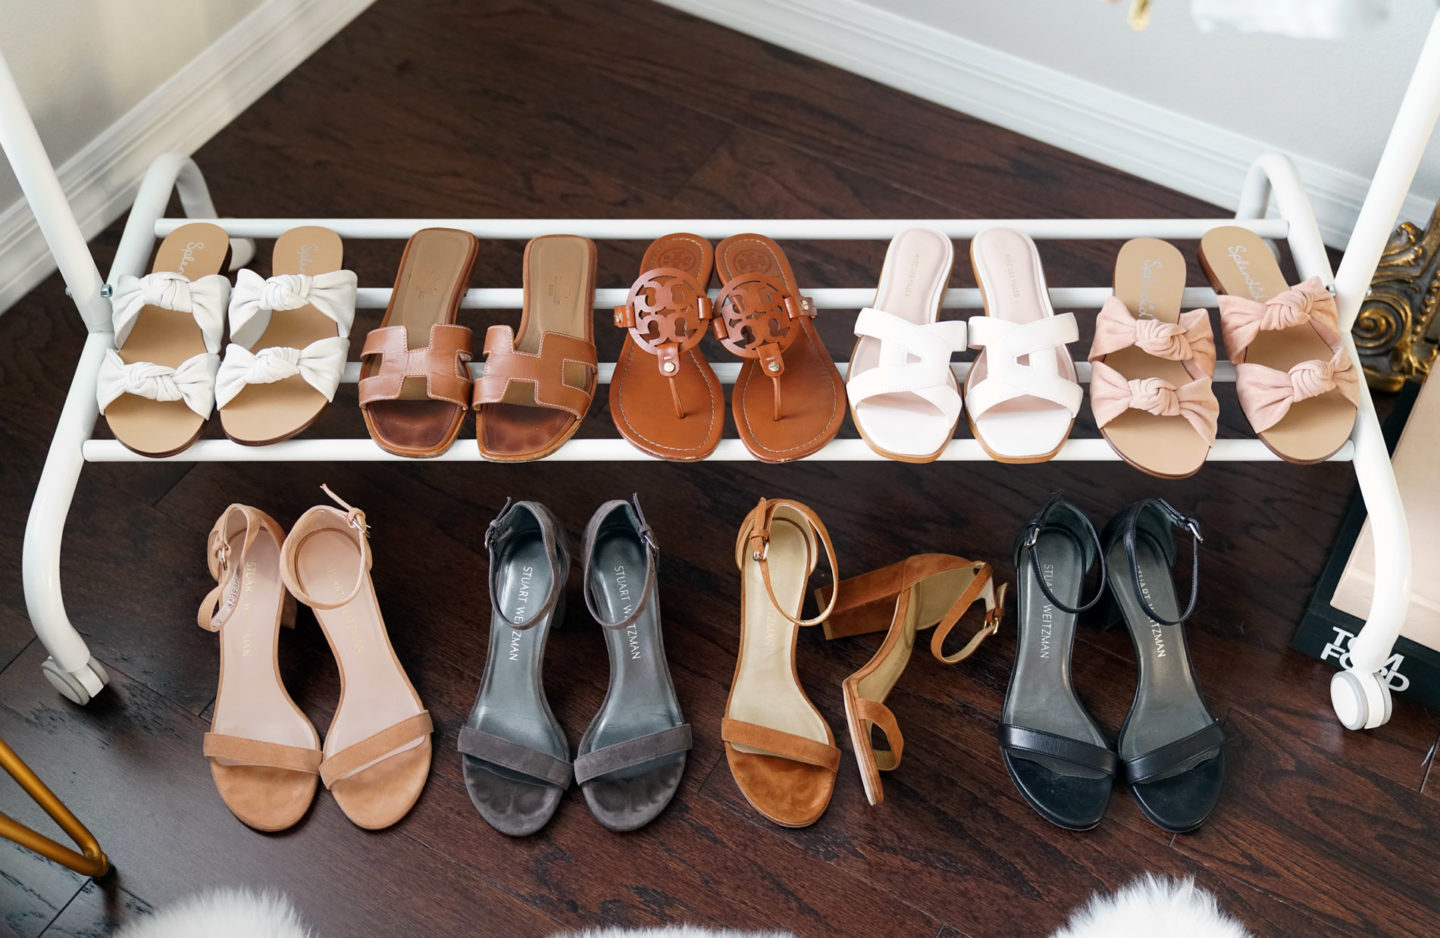 Favorite Sandals from Splendid, Hermes, Tory Burch, Stuart Weitzman